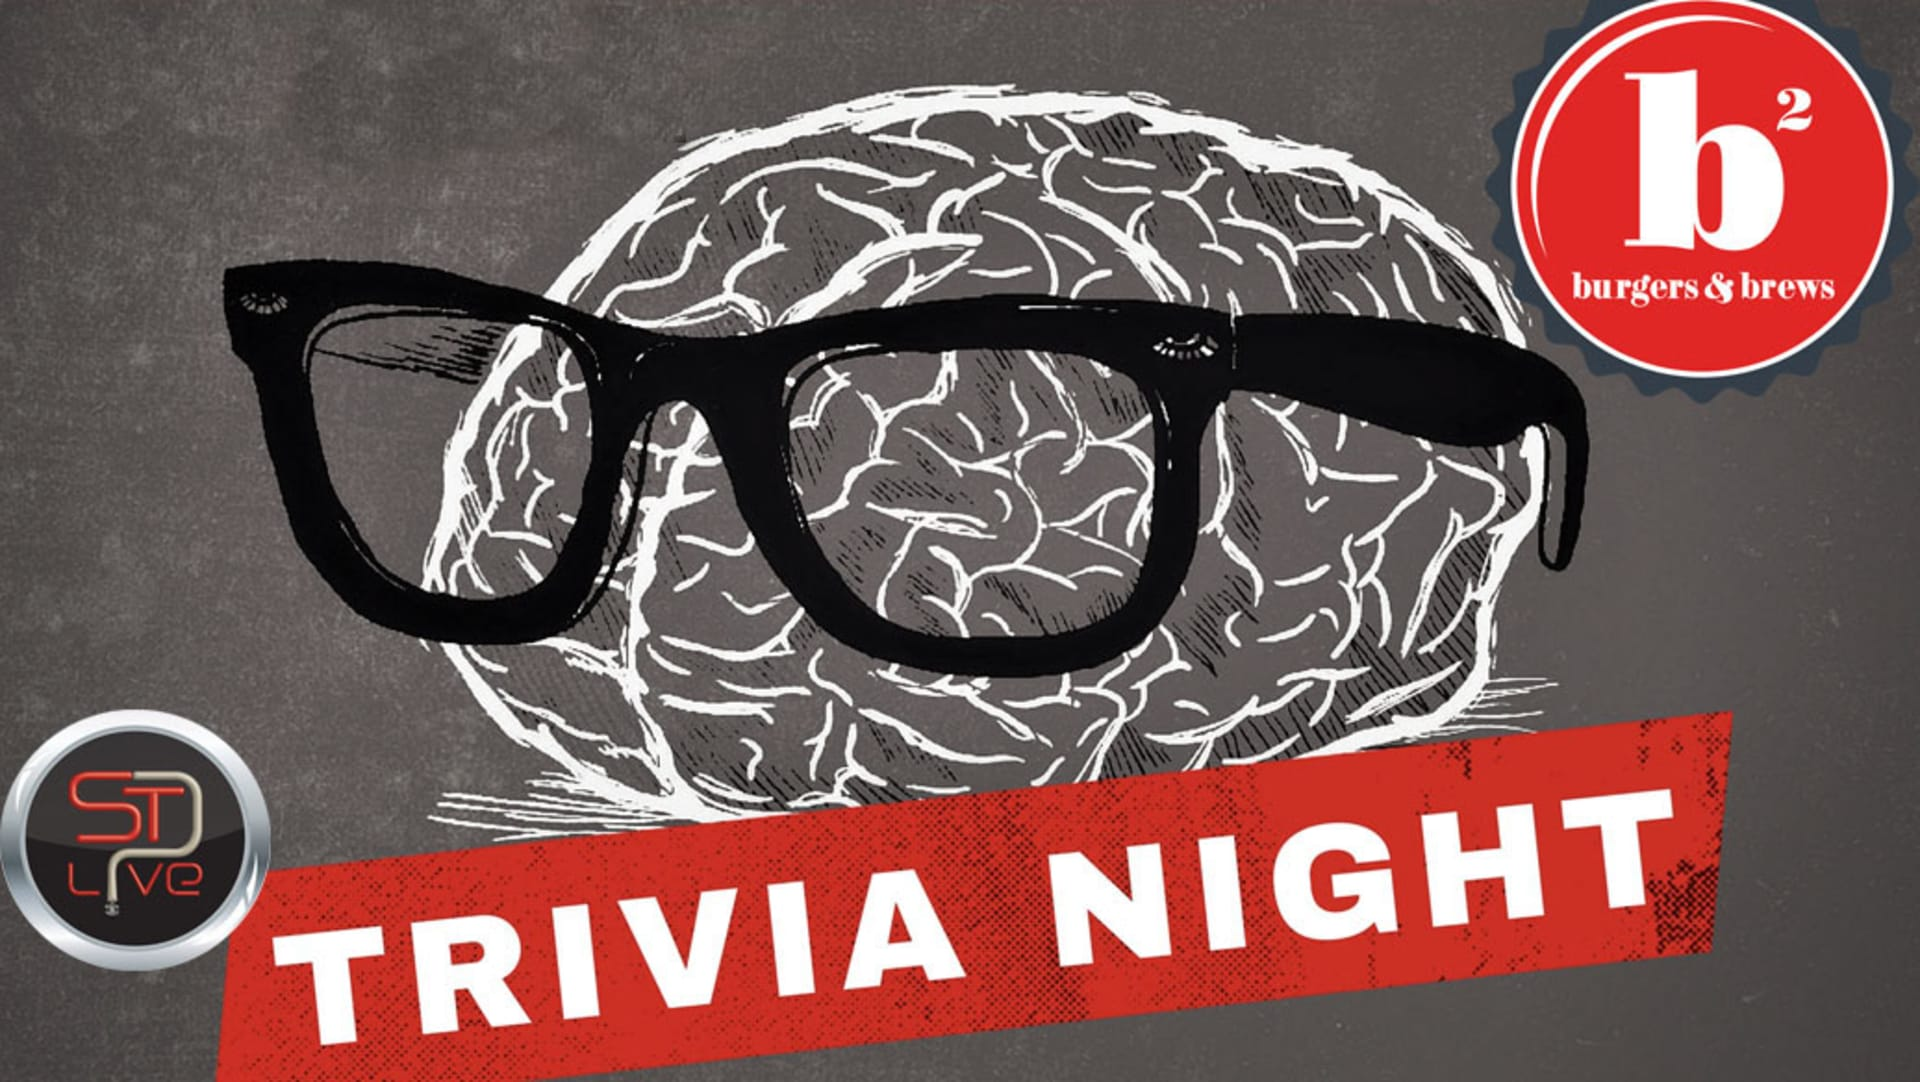 Bar Trivia at b² every Wednesday with Showtime Trivia Live